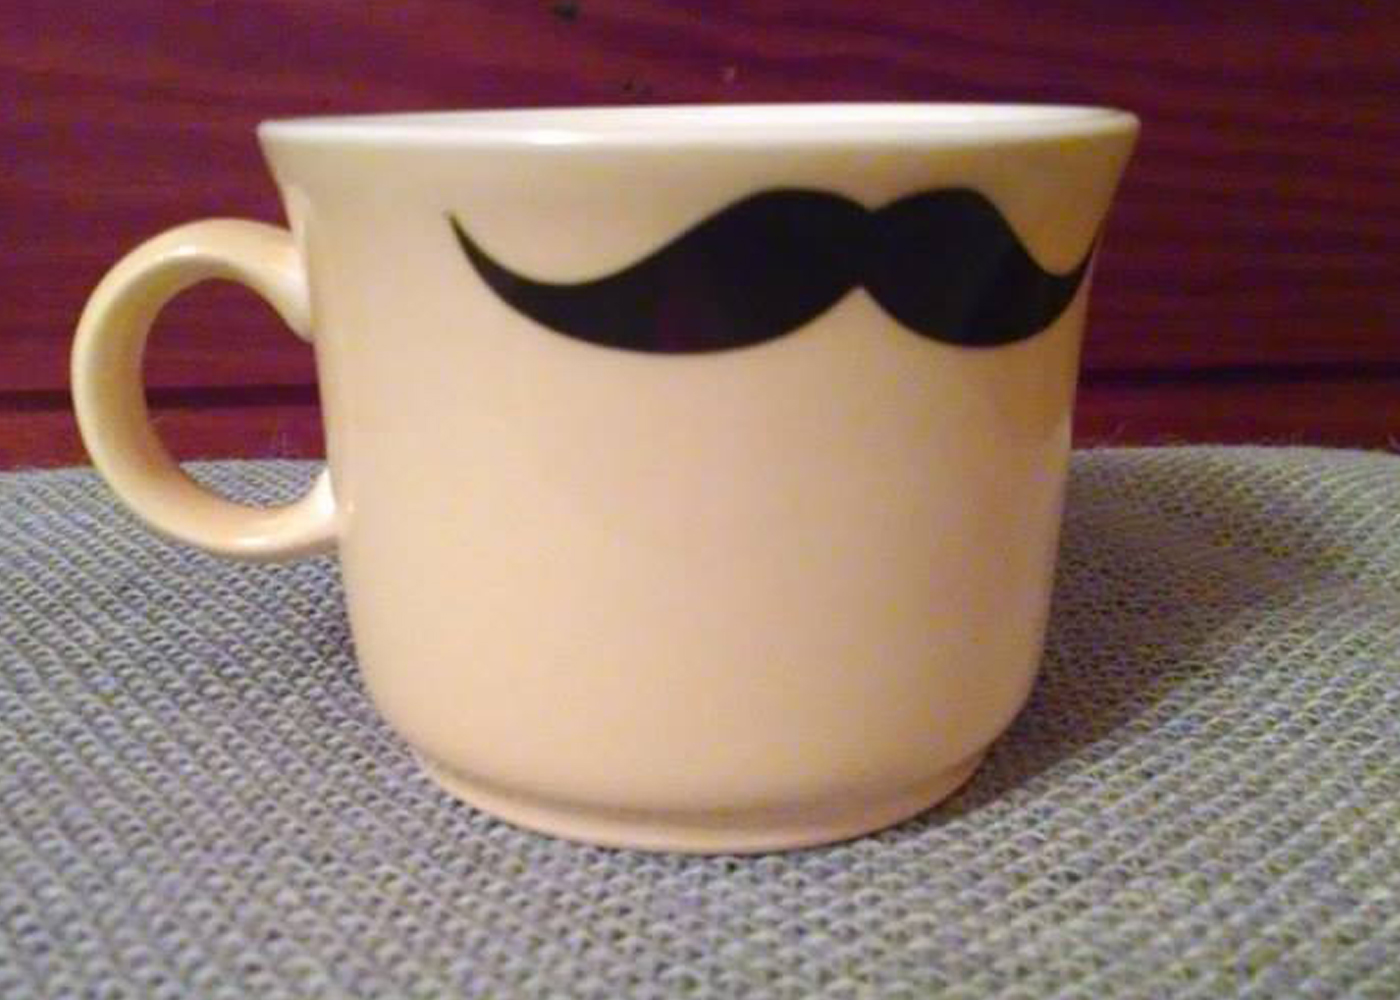 stache-vinyl-decal-on-a-mug.jpg